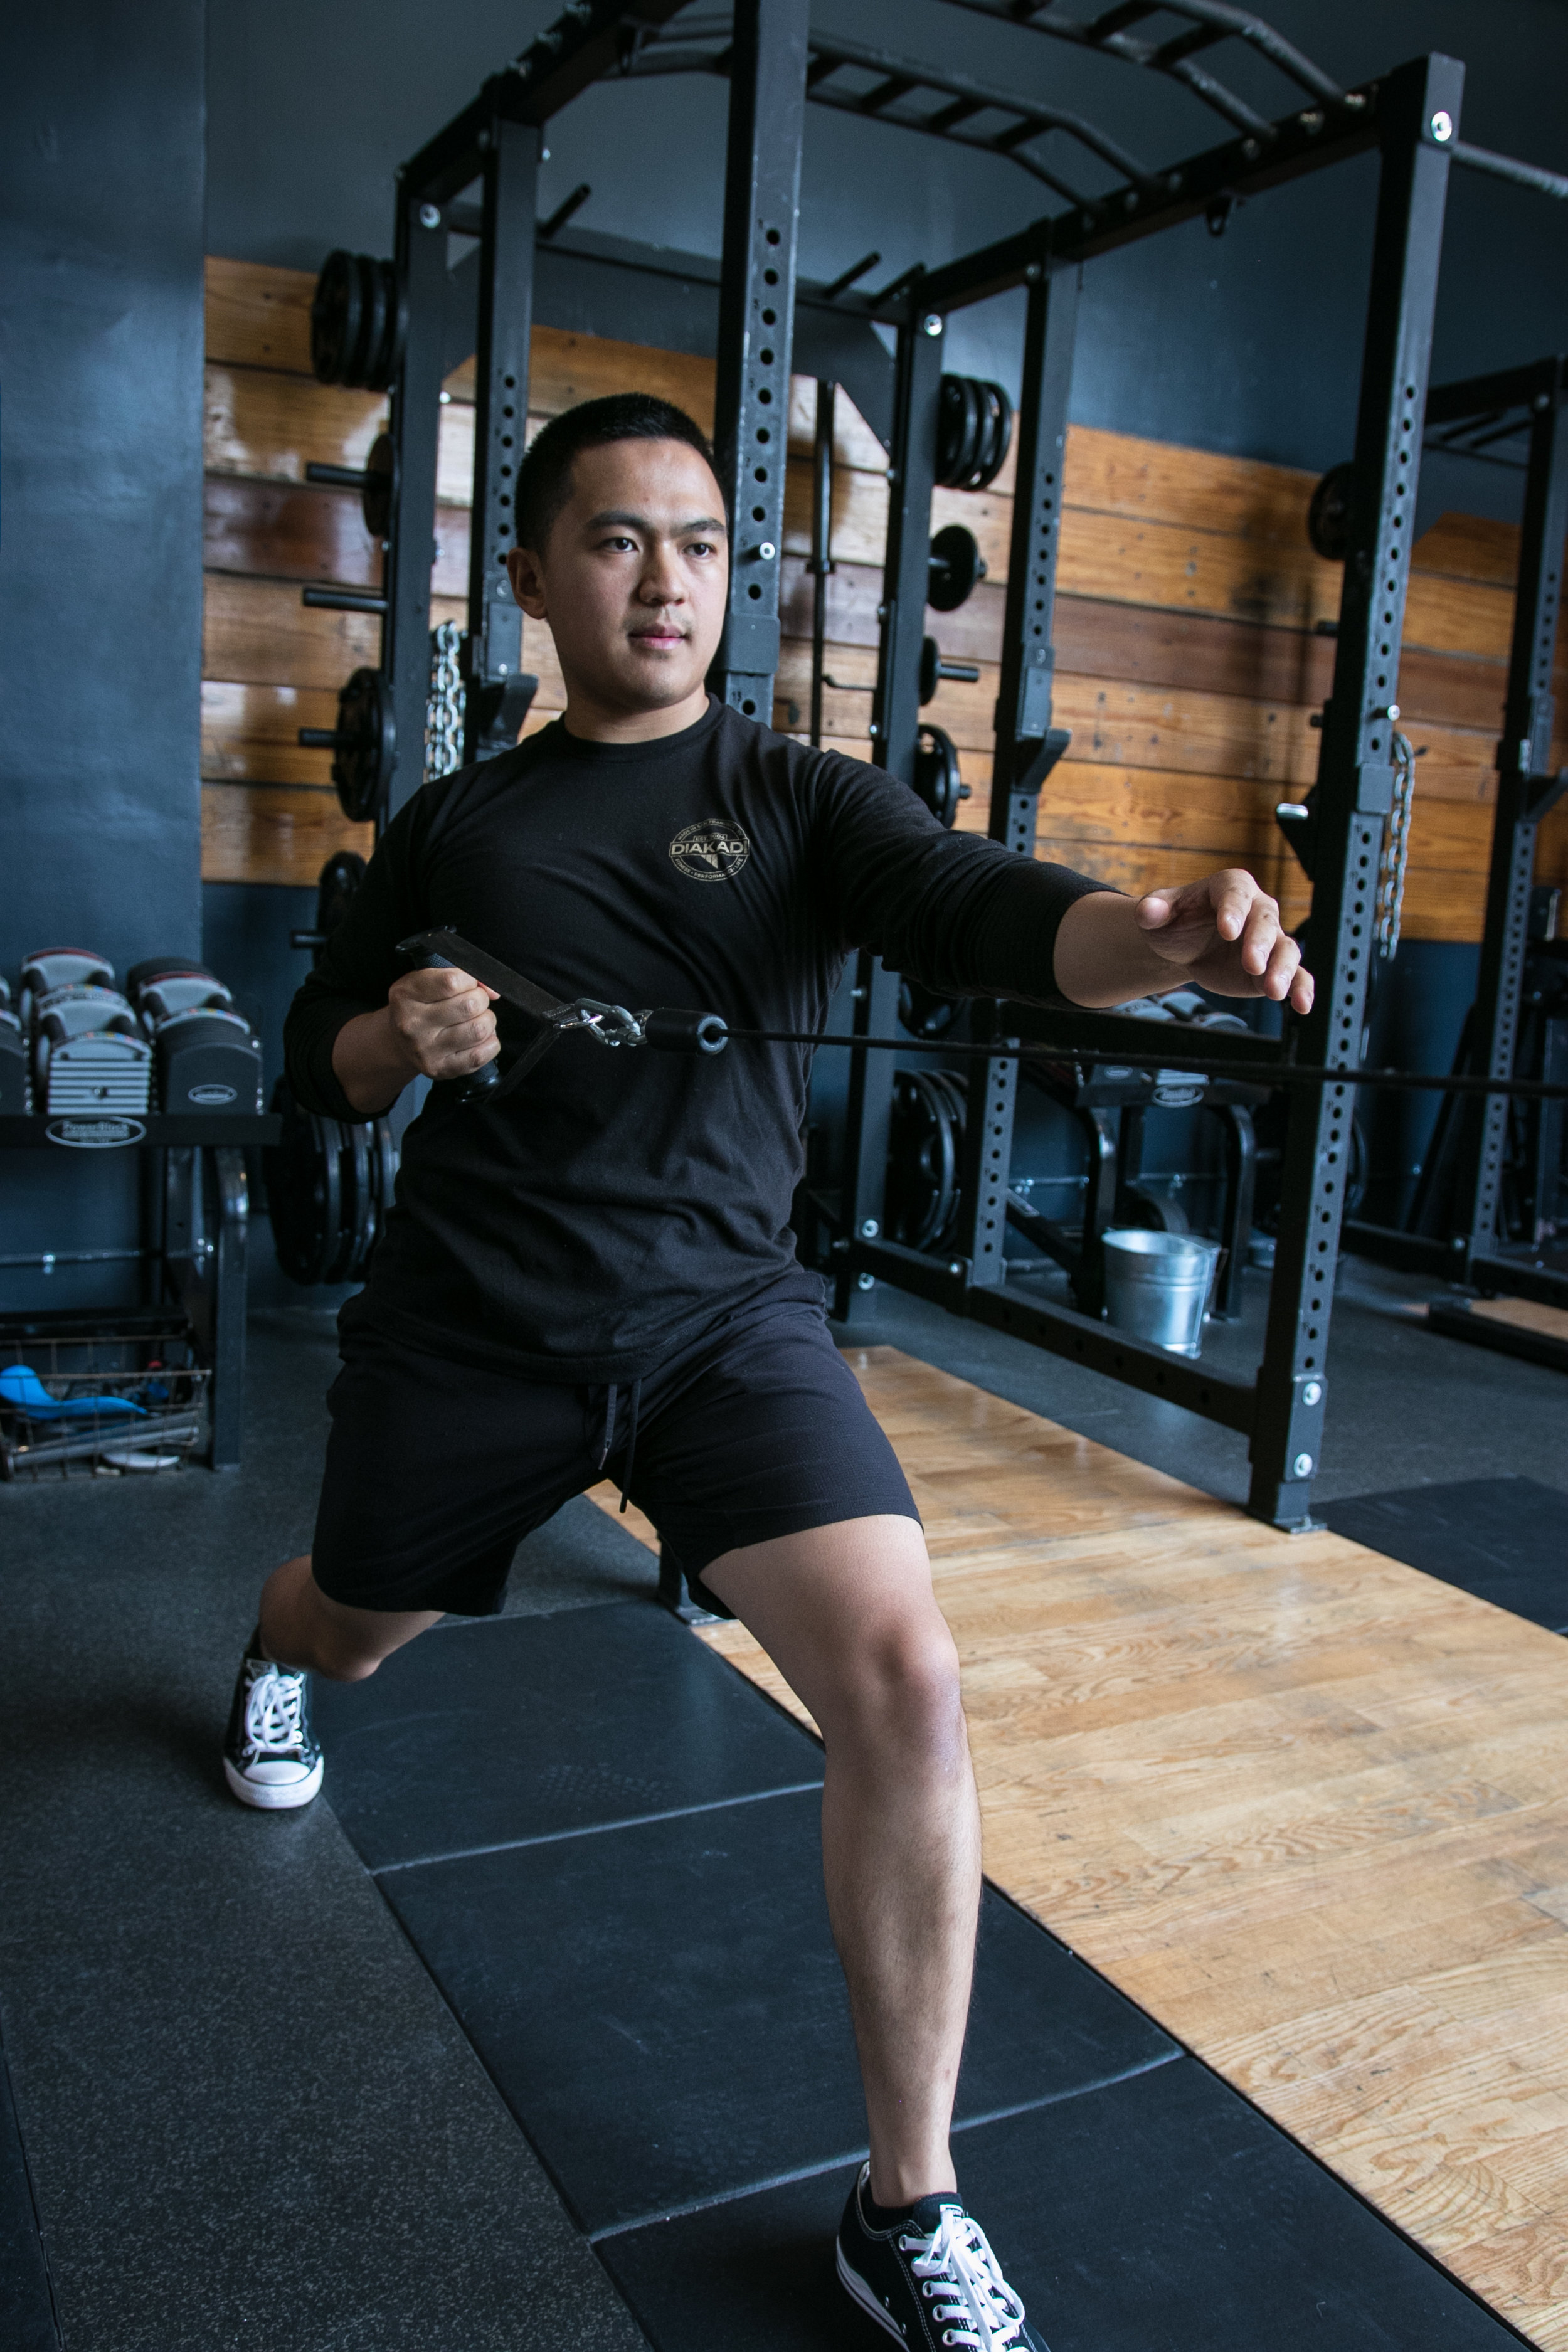 Austin Villamil strength training for past injuries and pain.jpg